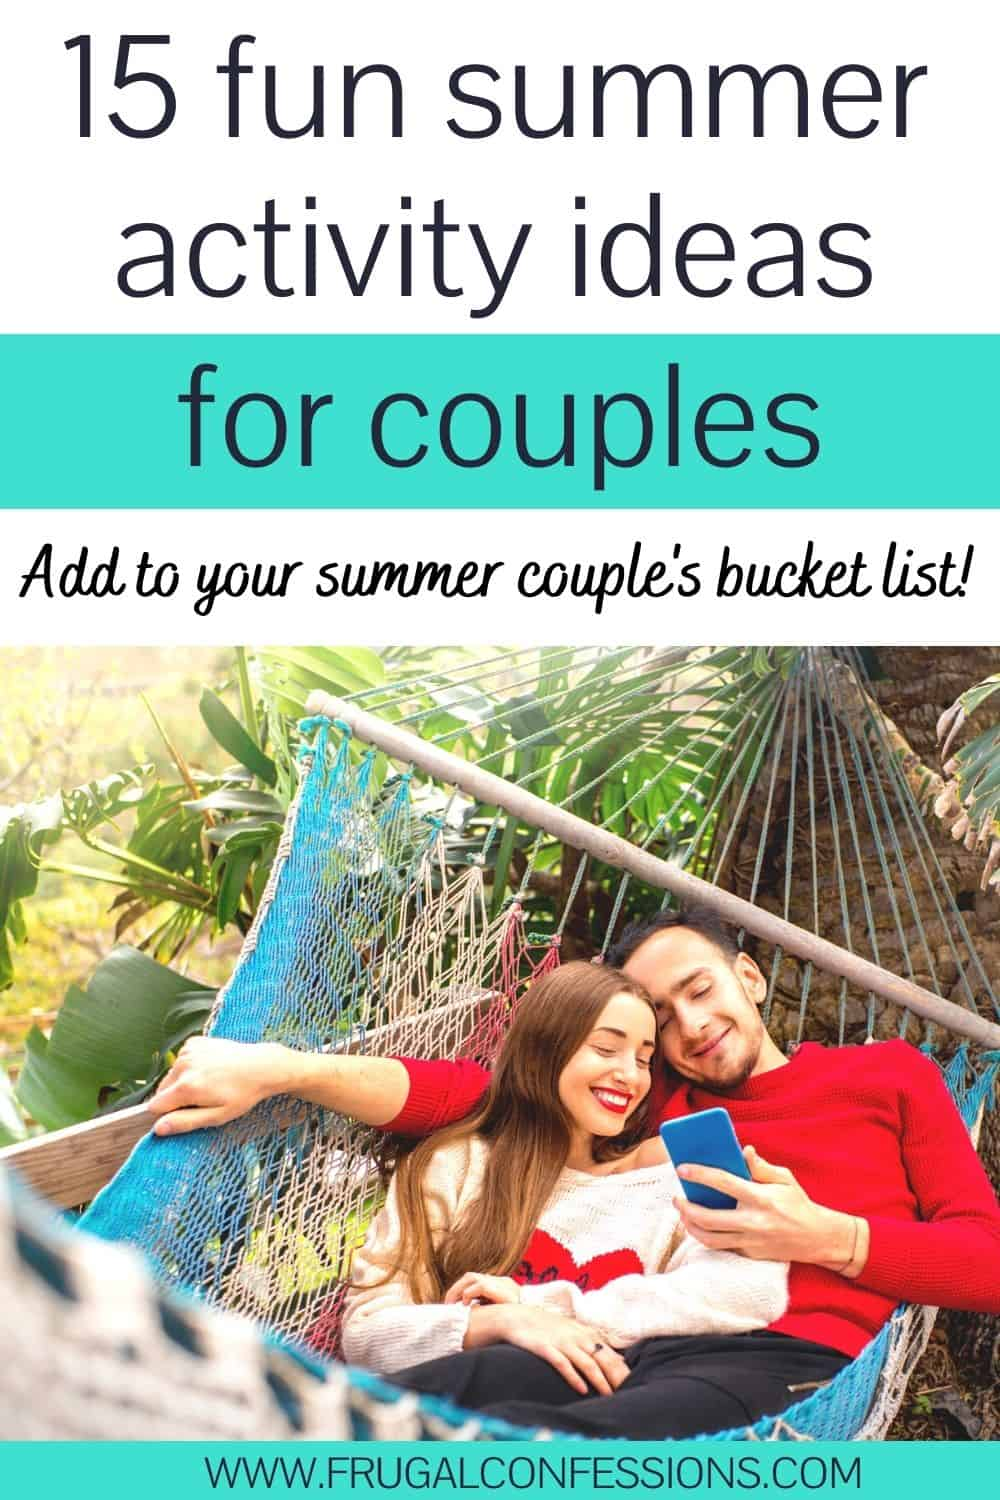 """young couple in red and white shirts on hammock, text overlay """"15 fun summer activity ideas for couples ' couple's bucket list"""""""